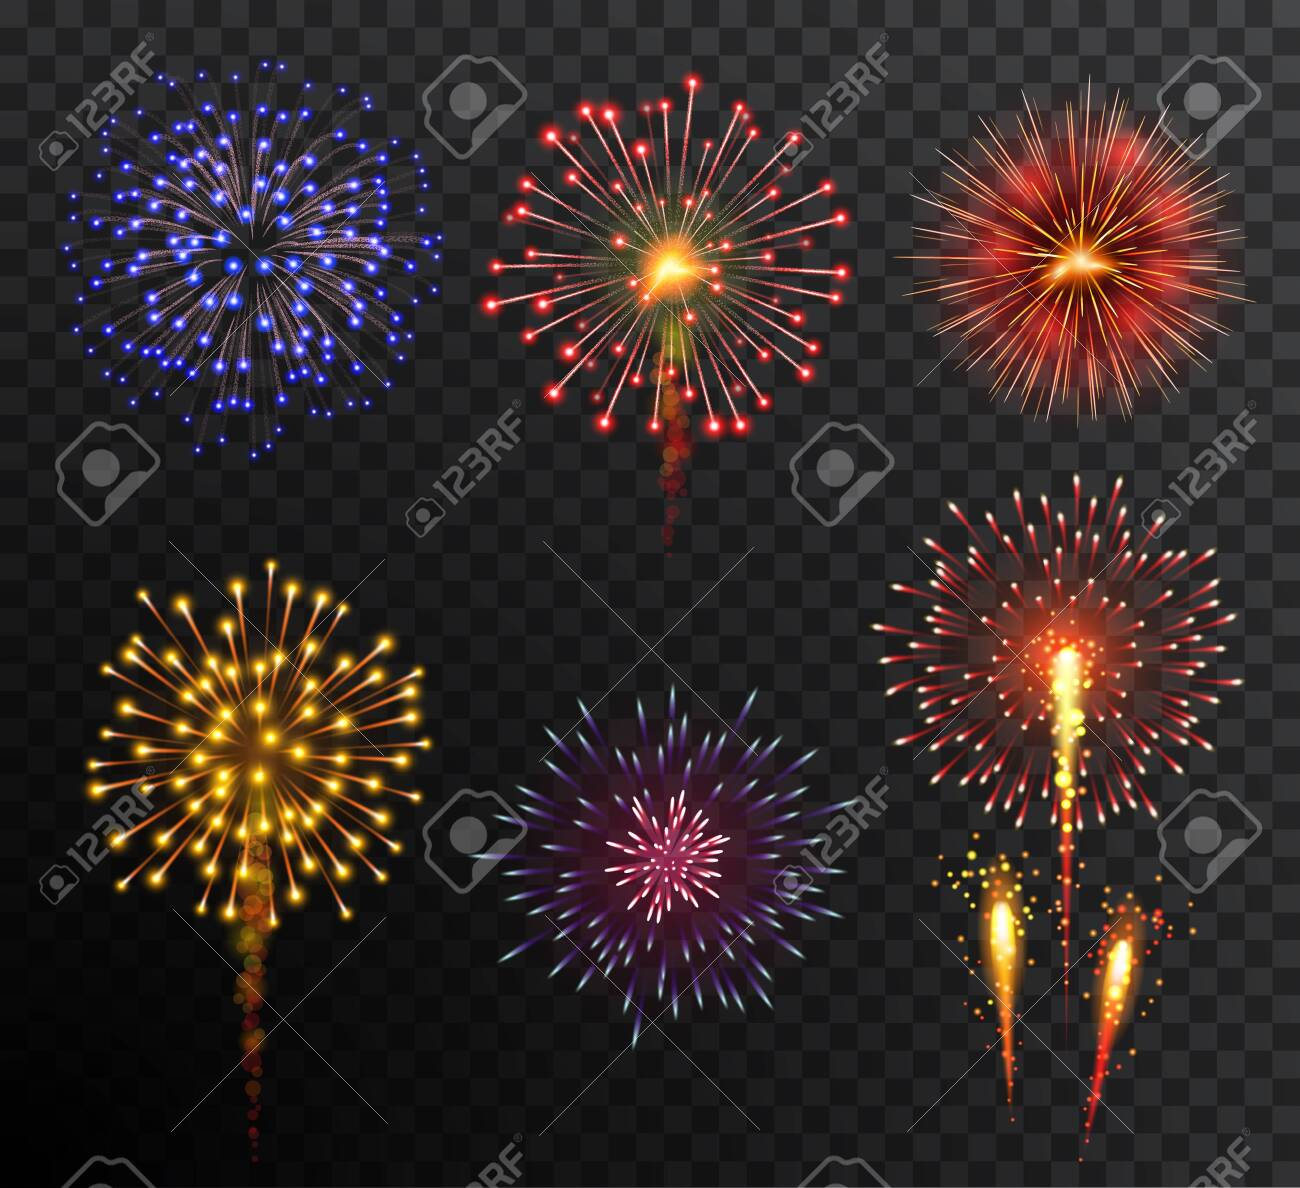 Firework. Set multy-colored new year bright firework explode isolated on transparent background. Holidey, victory, celebration symbol. Festival, anniversary or party decoration - 134968705